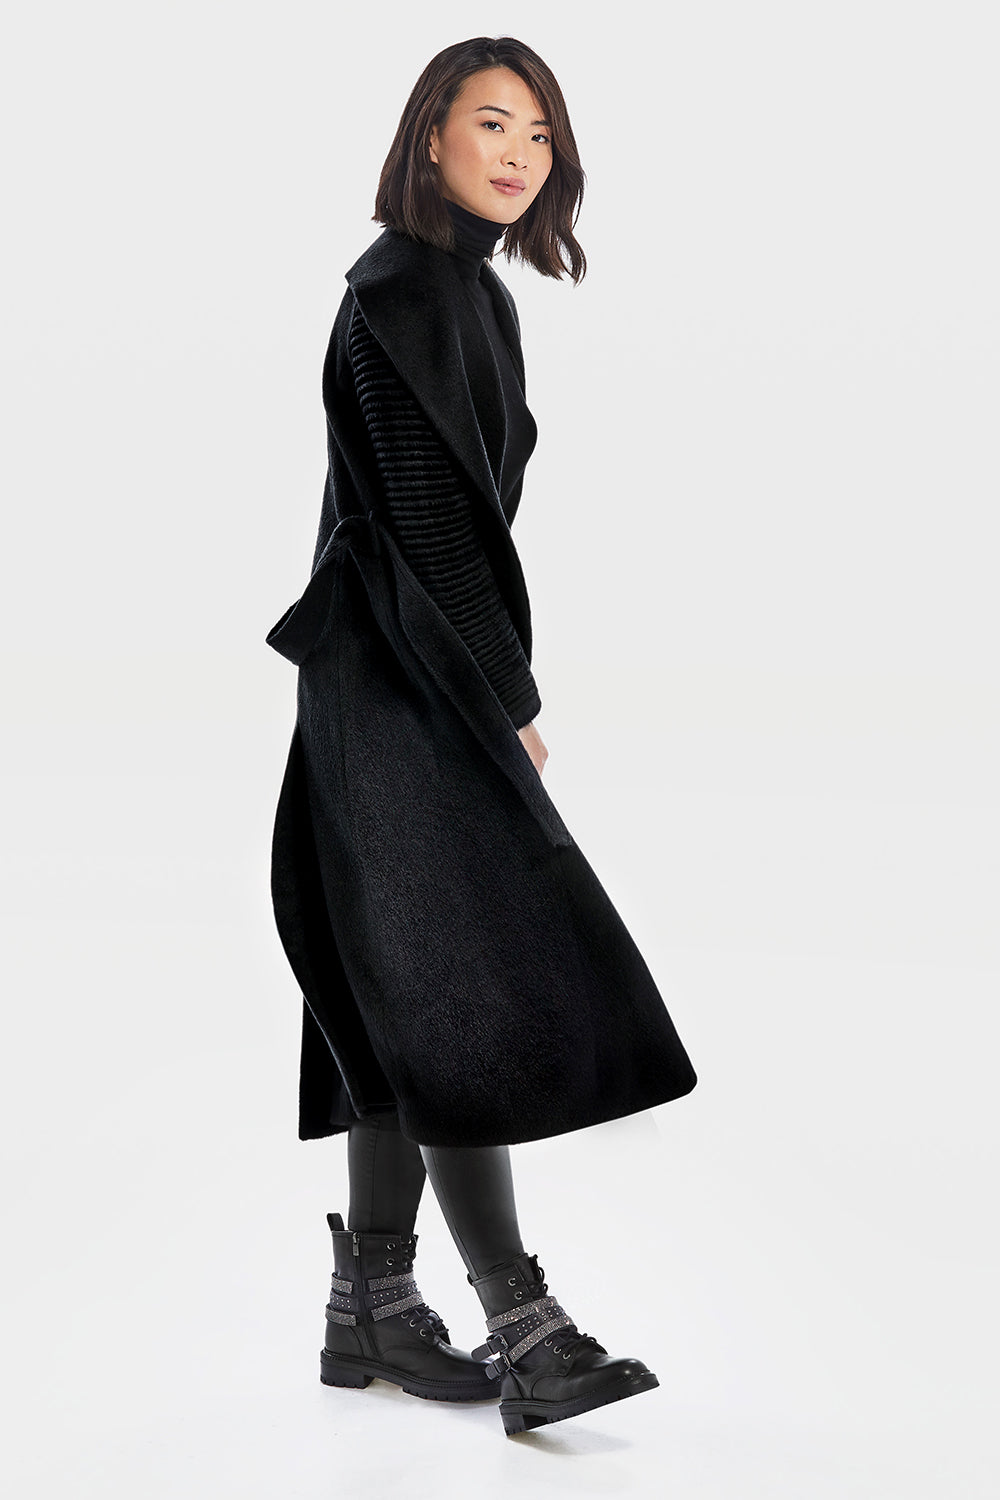 Sentaler Suri Alpaca Long Shawl Collar Wrap Coat with Ribbed Sleeves featured in Suri Alpaca and available in Black. Seen from side.